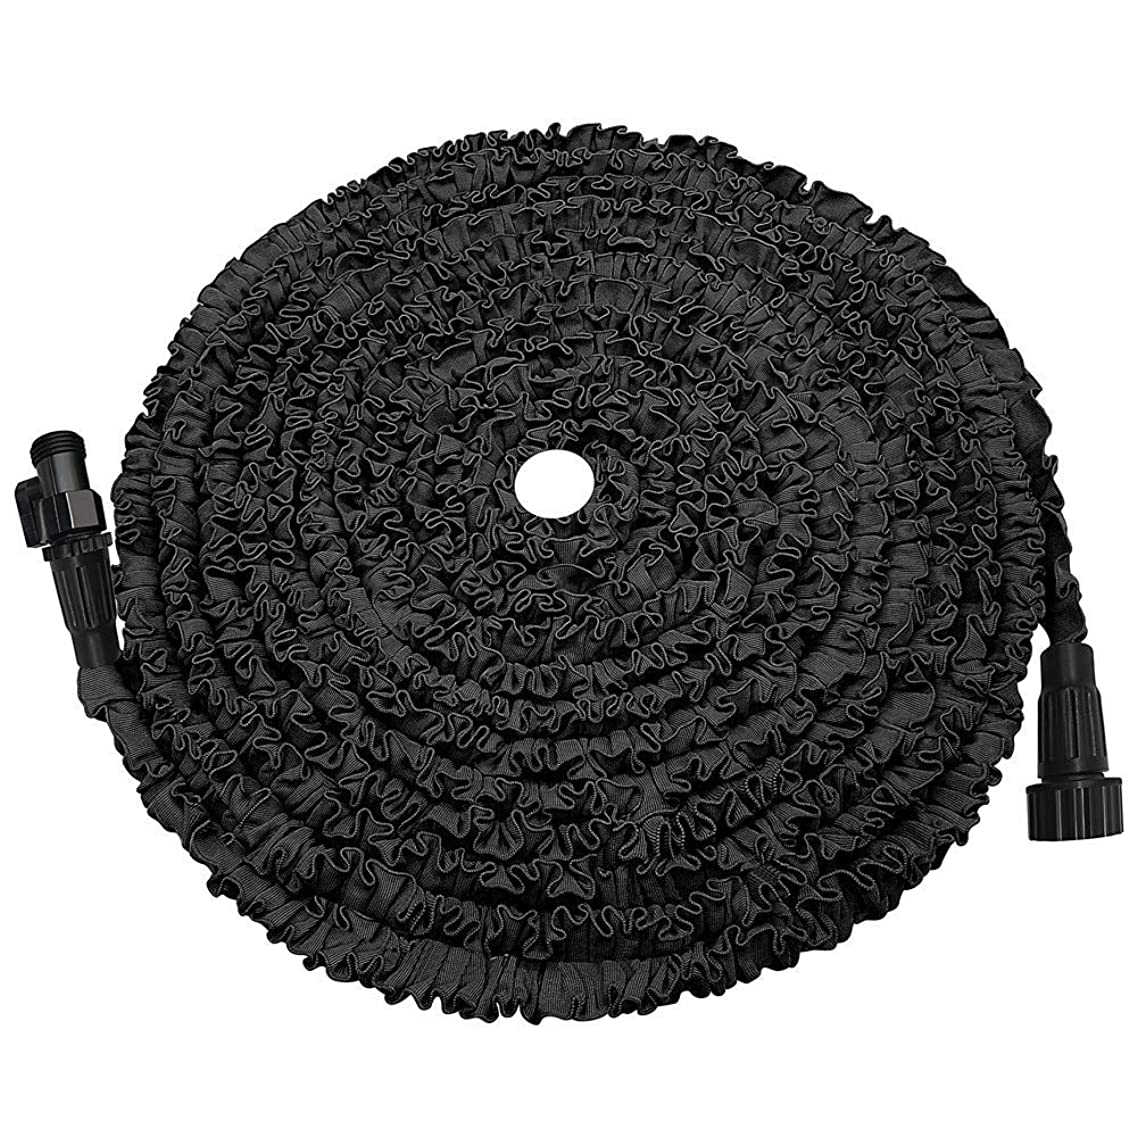 POYINRO Expandable Garden Hose, 50ft Strongest Expanding Garden Hose on The Market with Triple Layer Latex Core & Latest Improved Extra Strength Fabric Protection for All Your Watering Needs(Black)